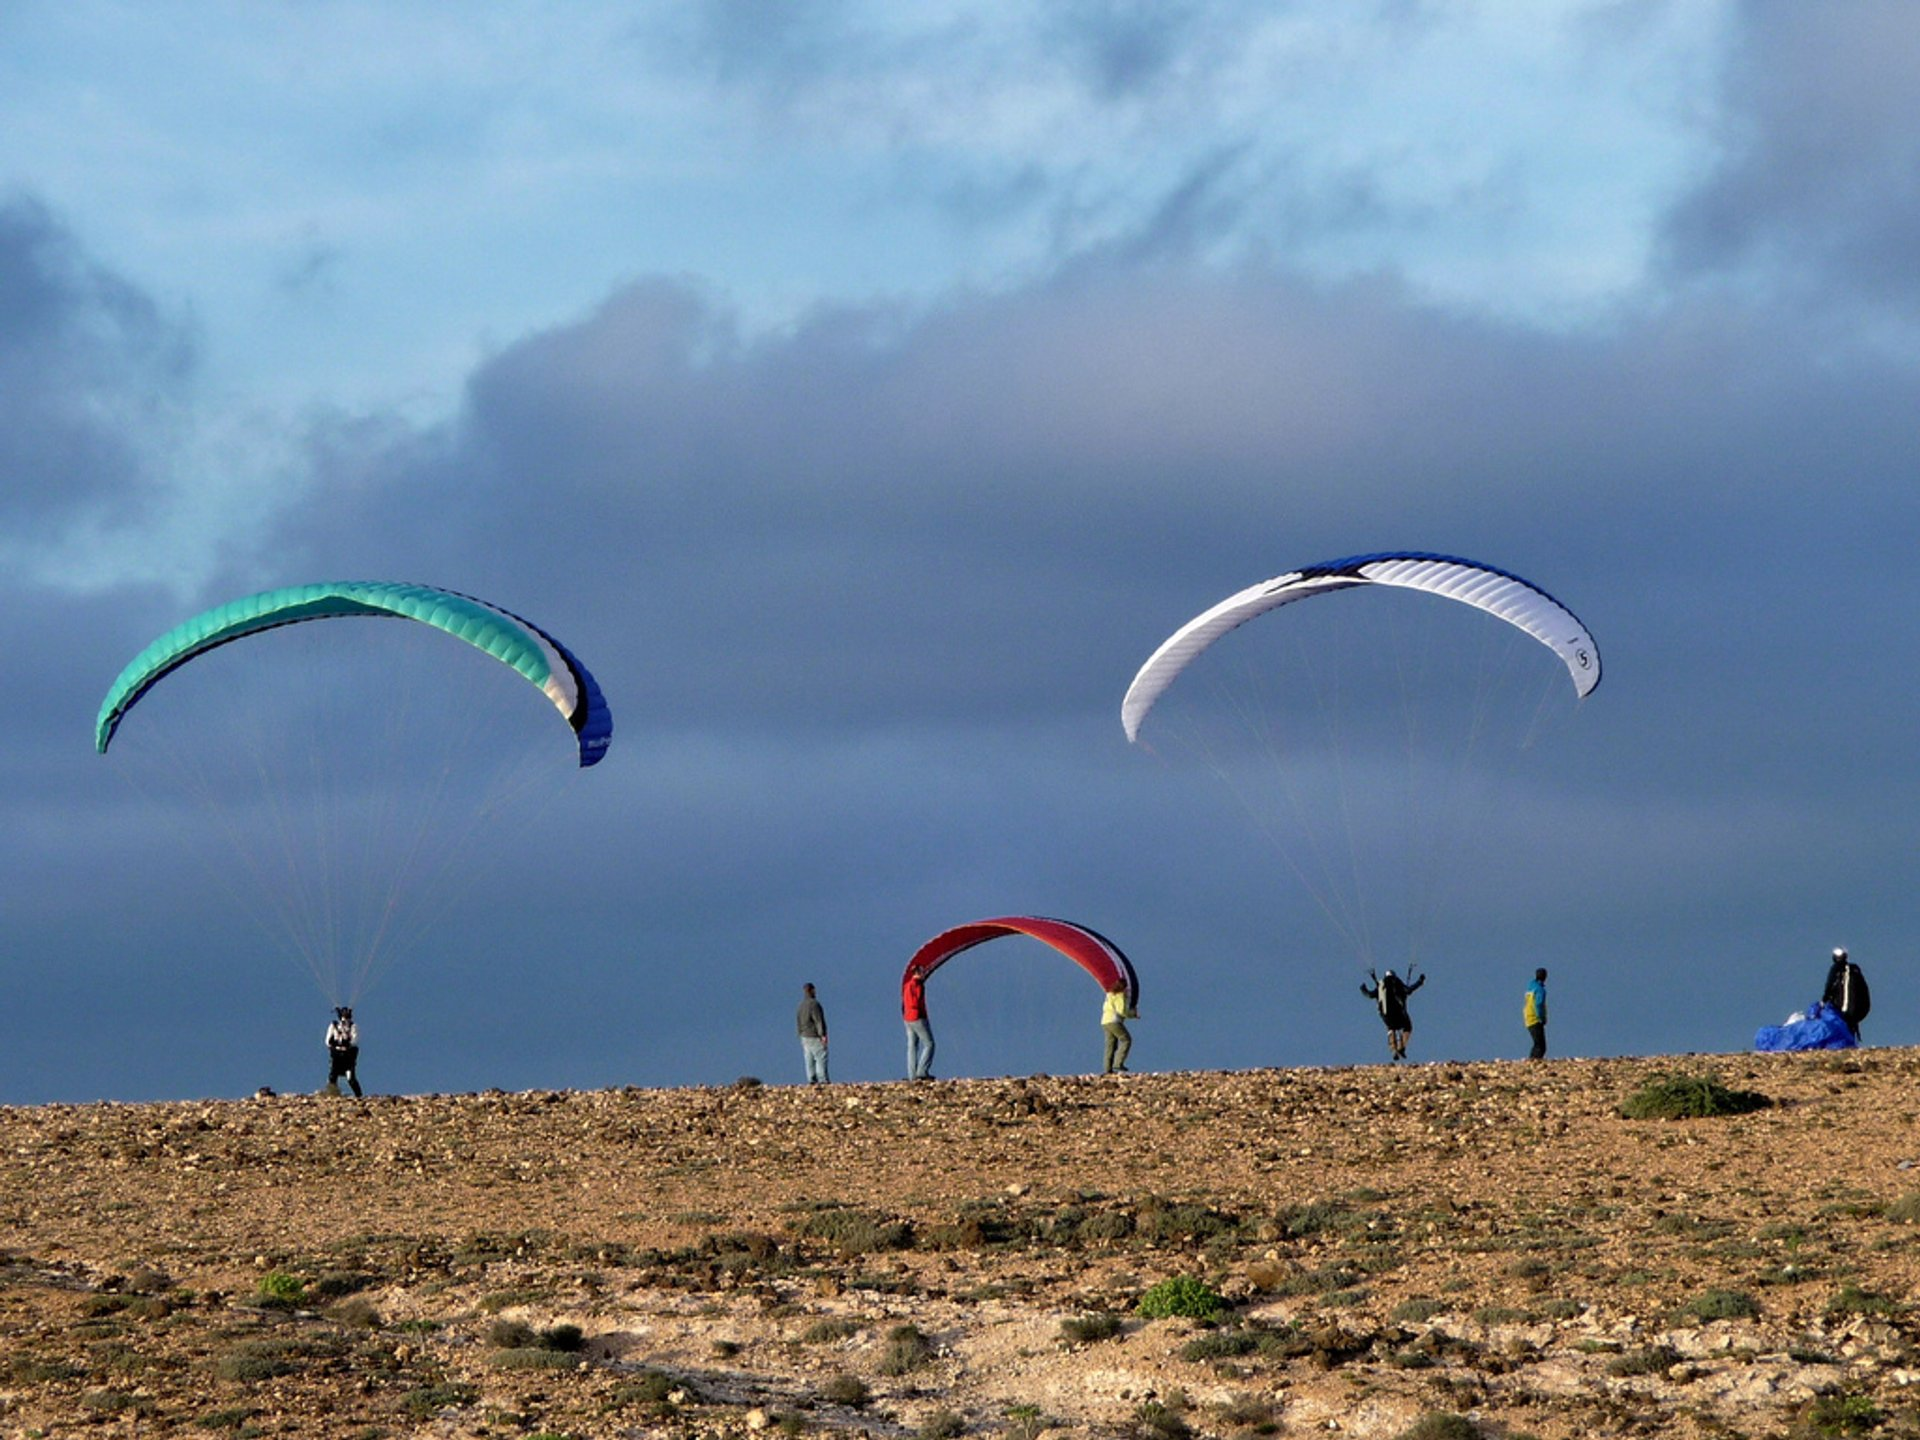 Paragliding in Canary Islands - Best Season 2020